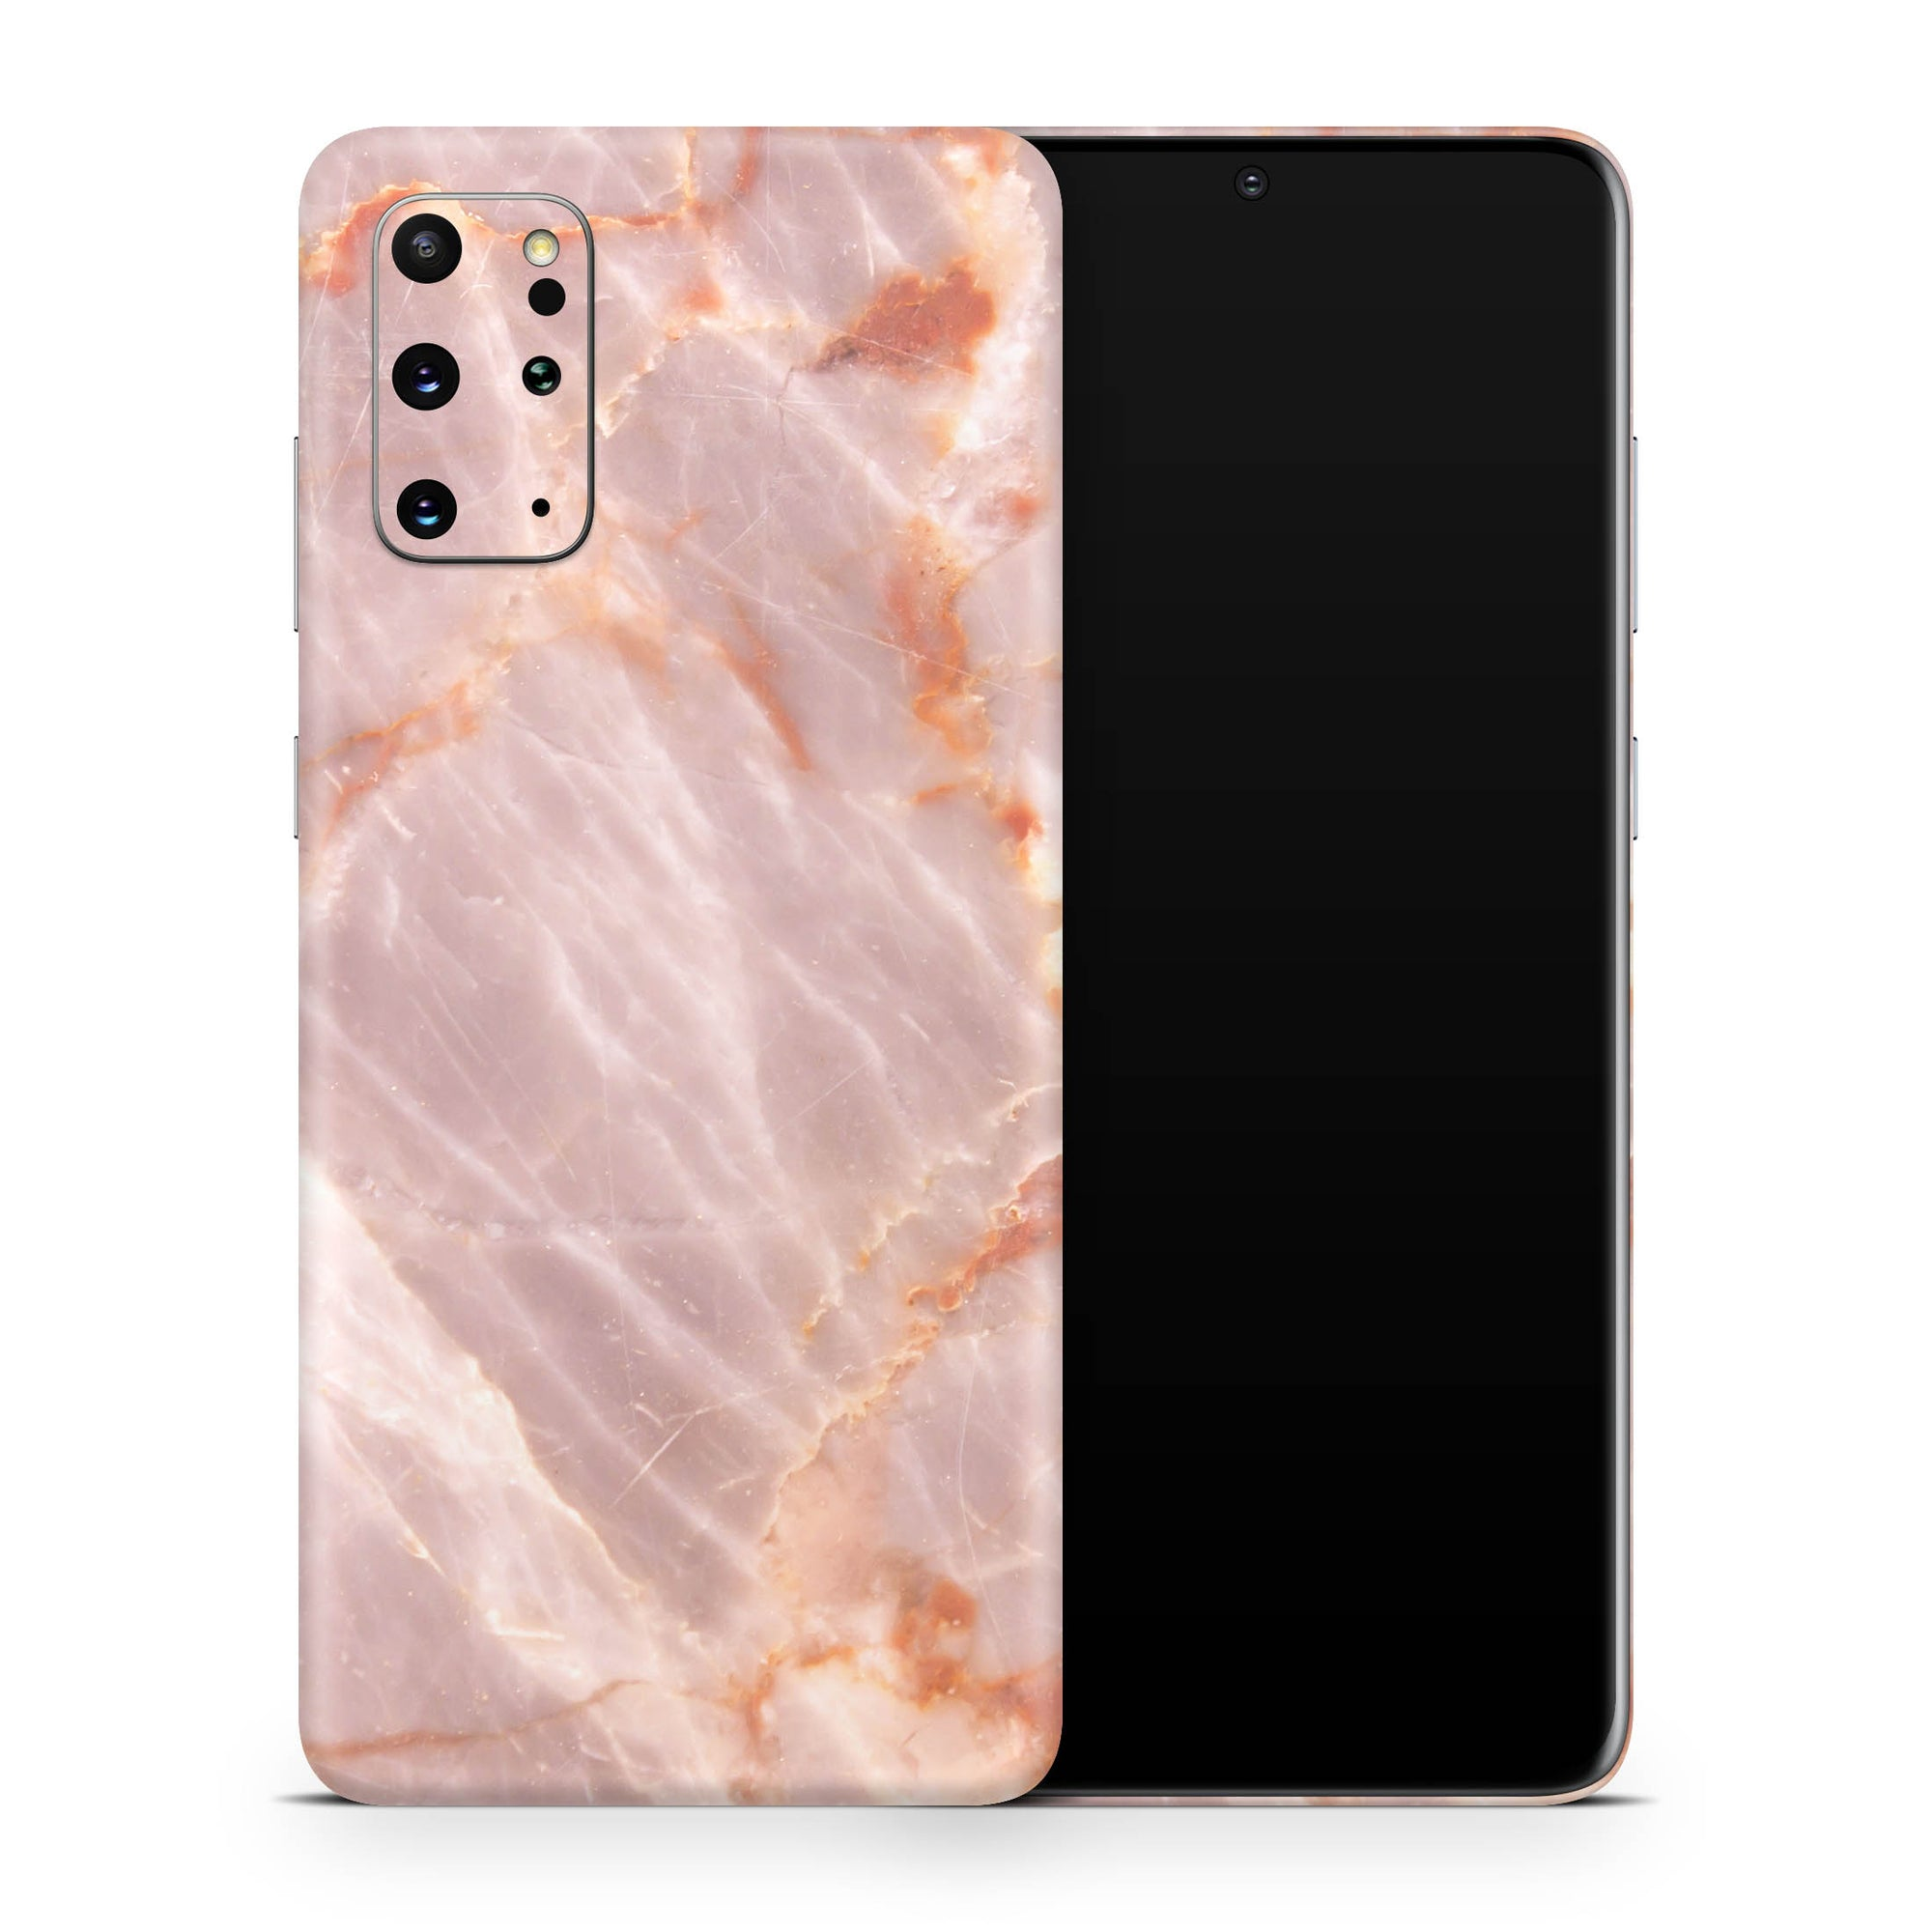 Blush Marble Galaxy S20 Plus Skin + Case-Uniqfind